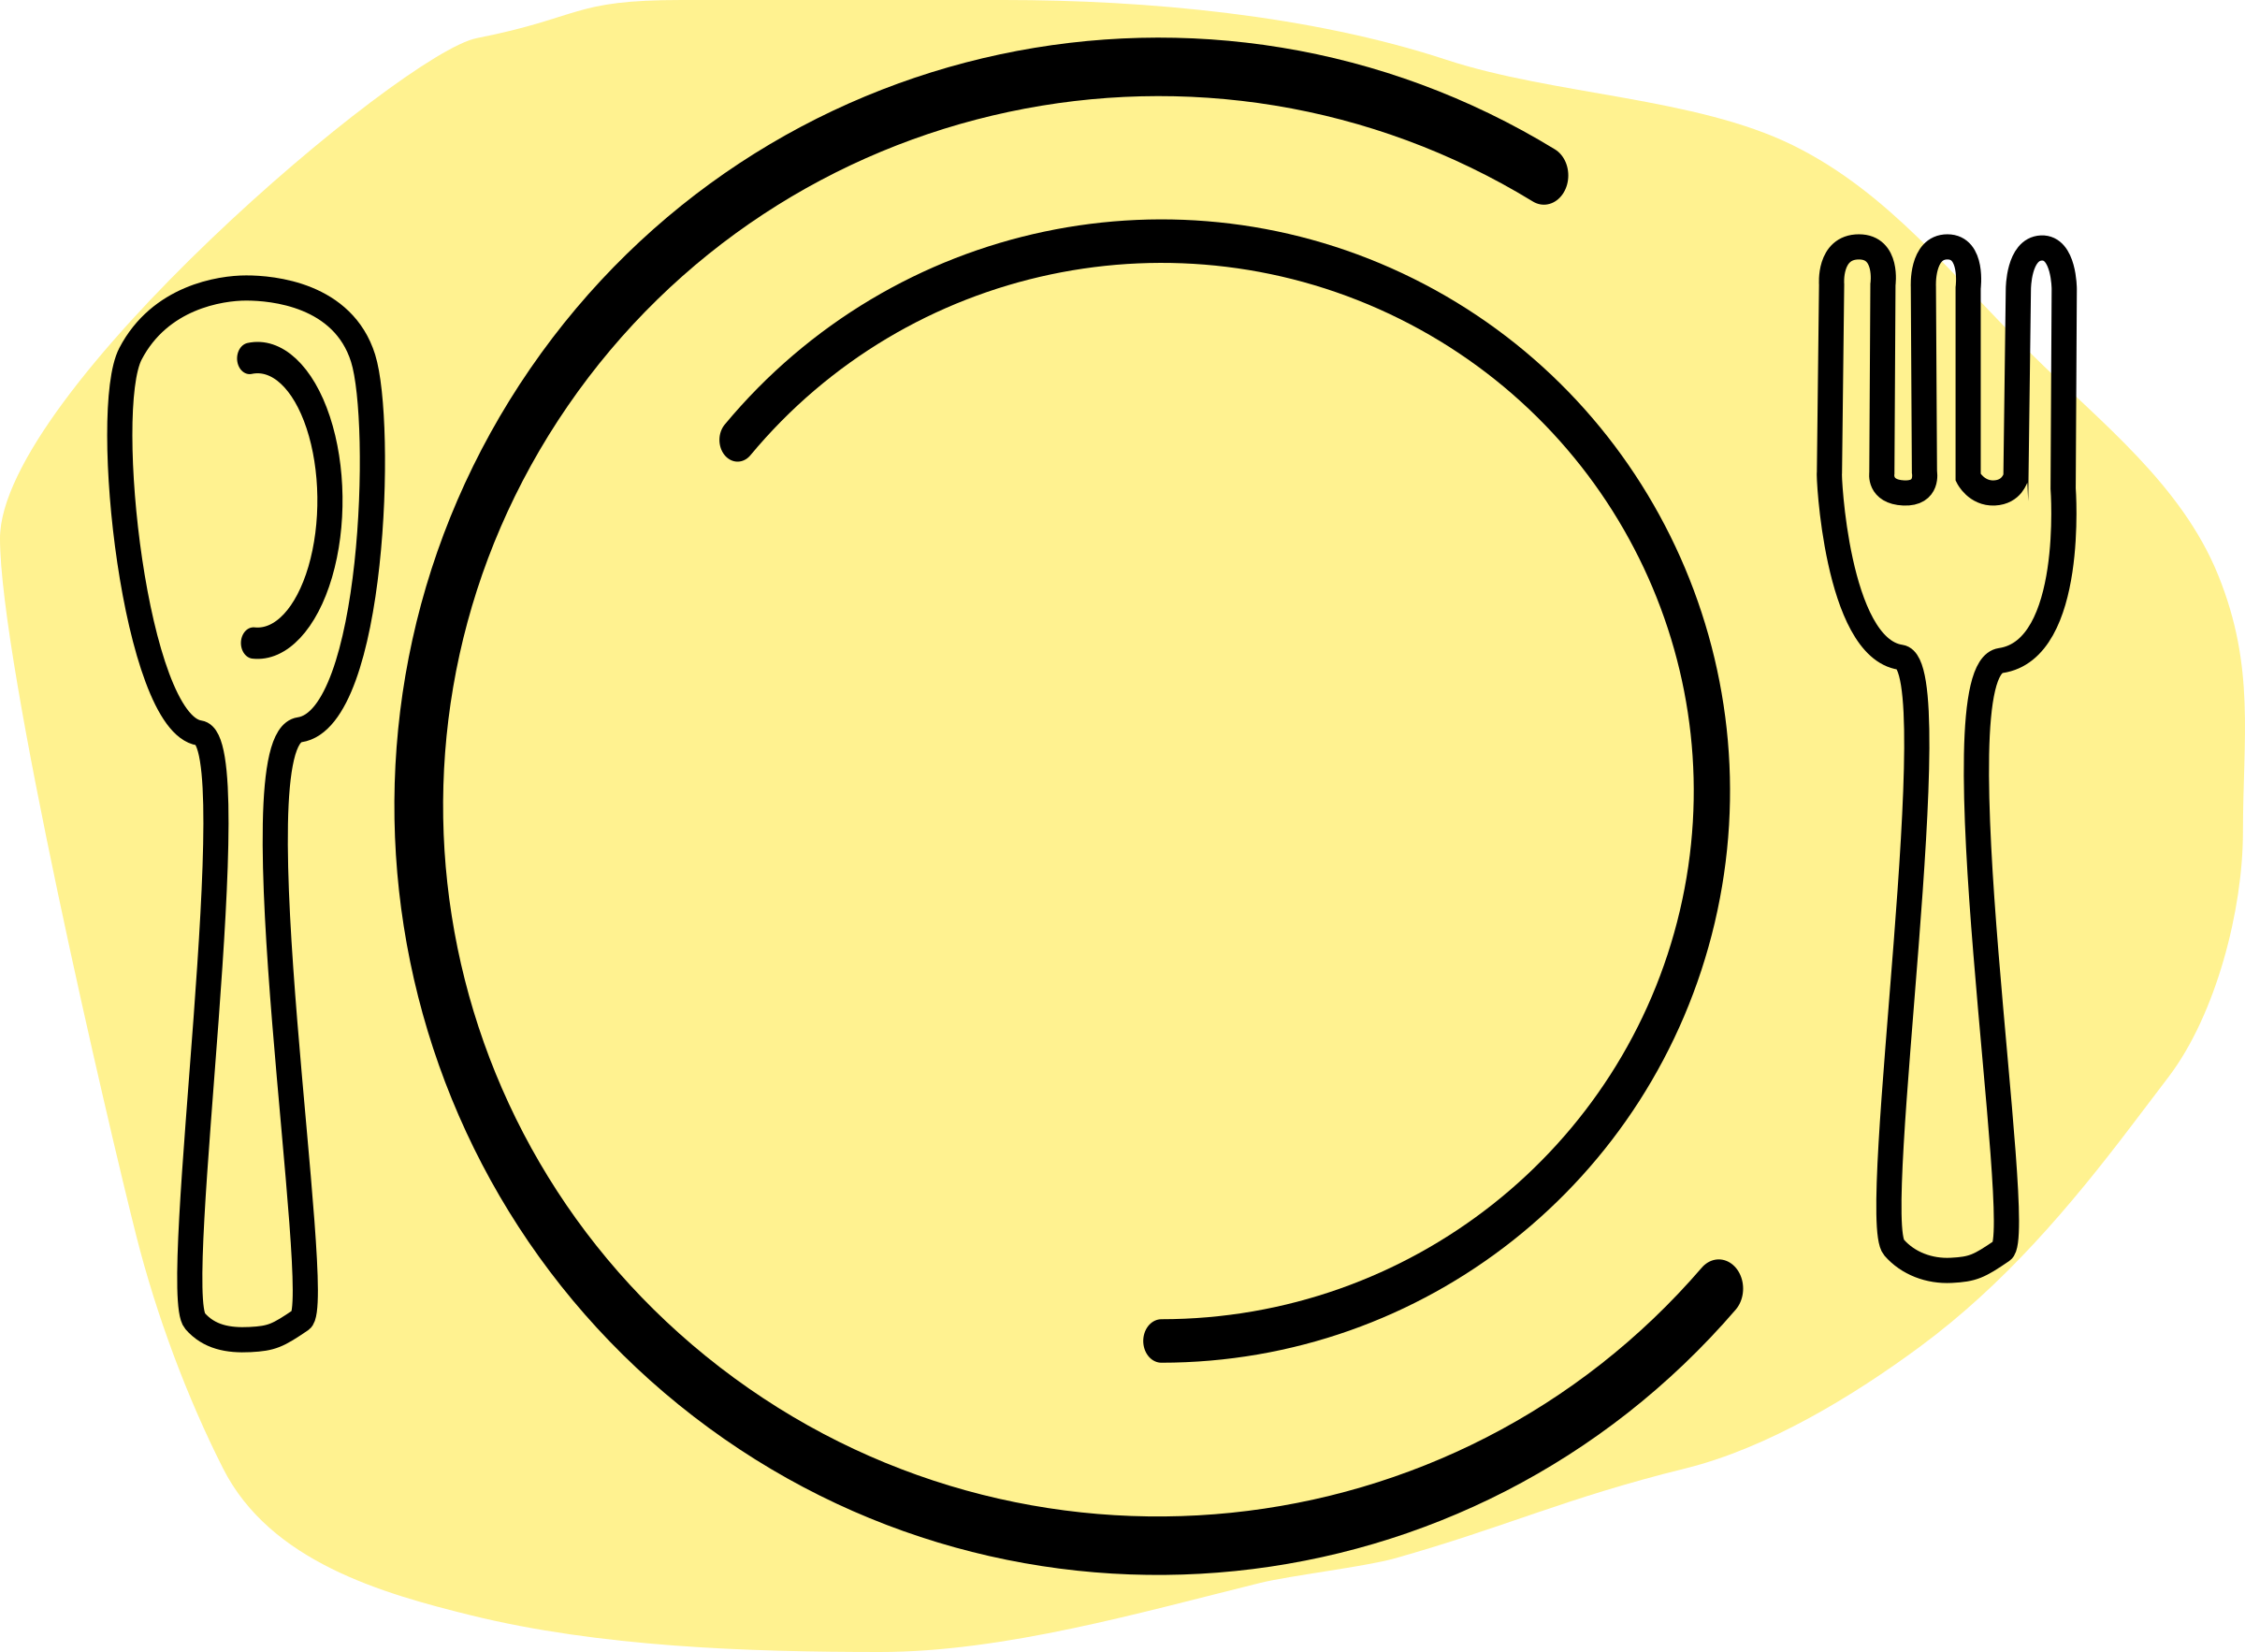 Wednesday clipart fellowship meal. Dinner plate with spoon